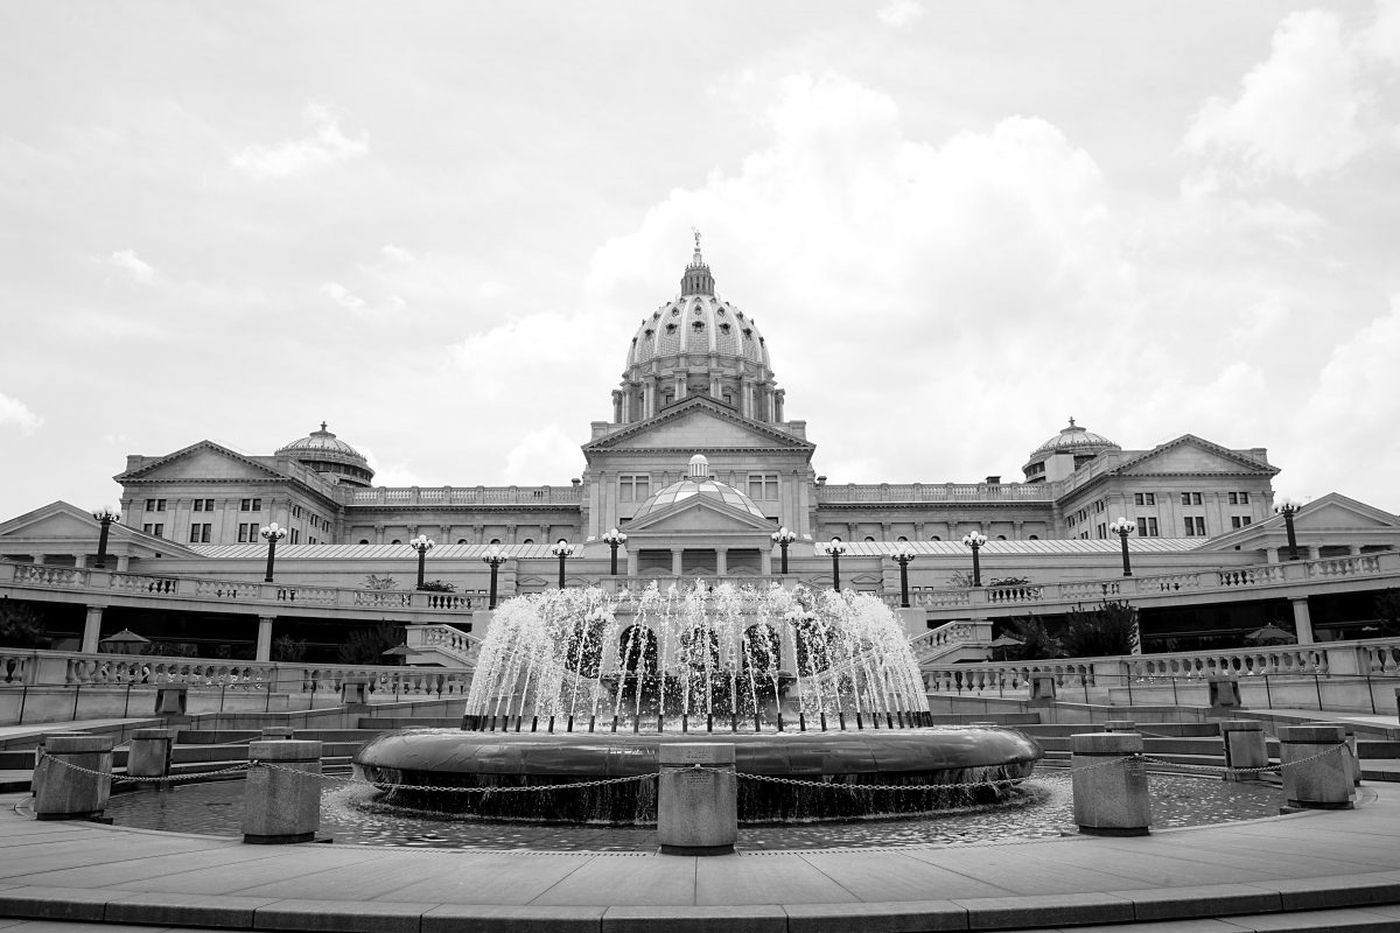 Now's the time to press for real Pa. redistricting reform | John Baer